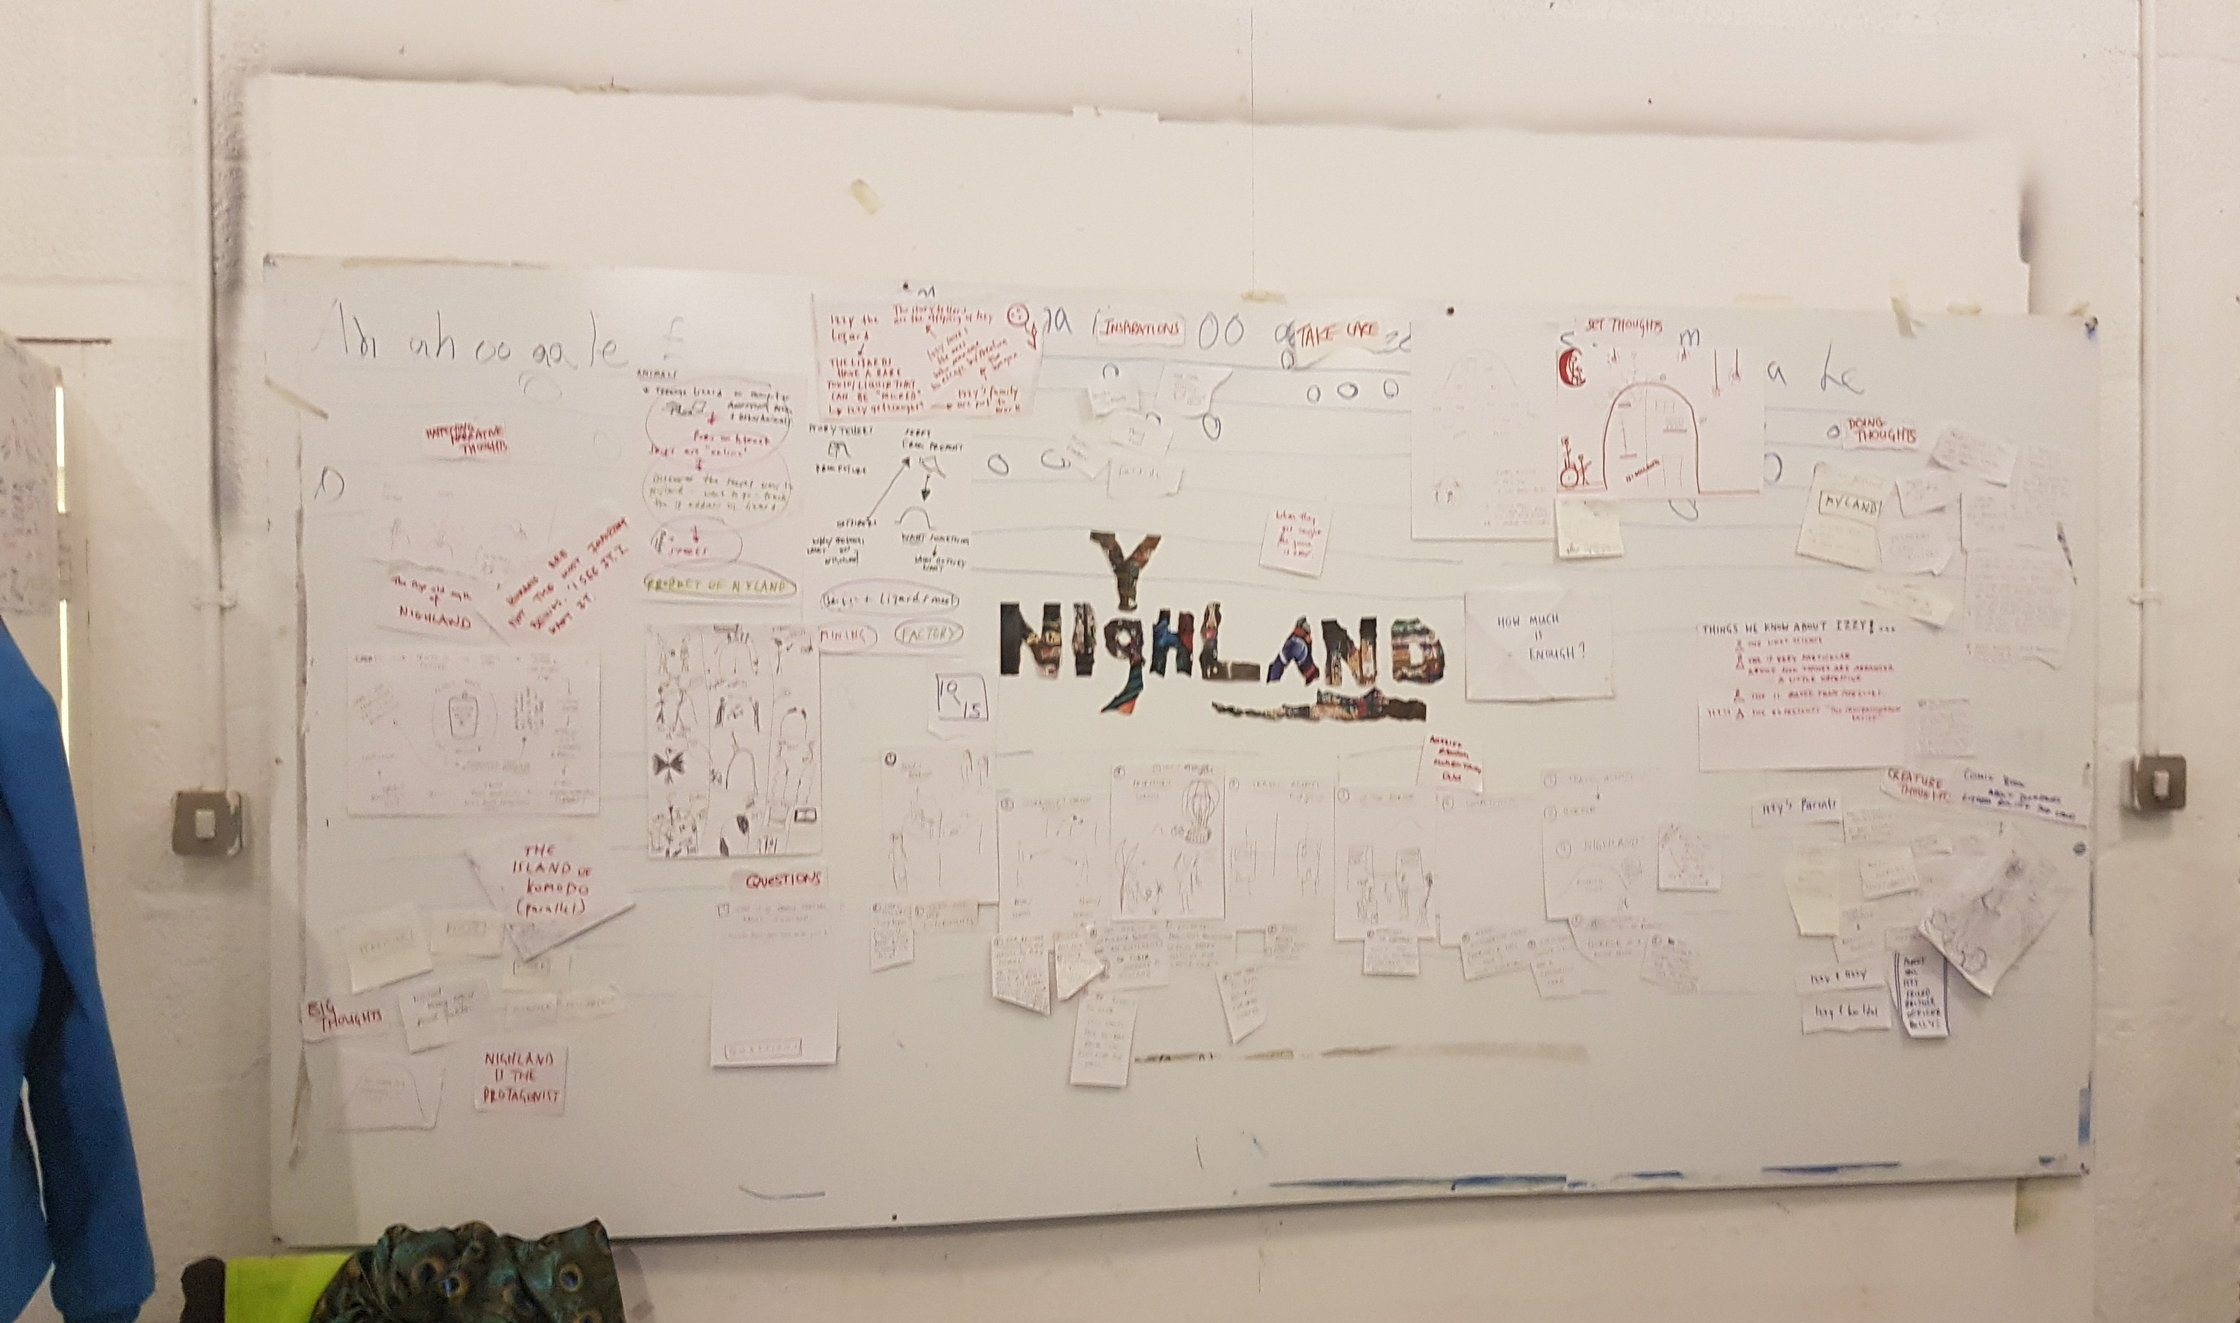 Brú's fourth production, Nighland begins! - We had the very best time spending two weeks on residency in the wonderful Áras Éanna supported by Galway County Council. Our newest show will have its first showing in May.